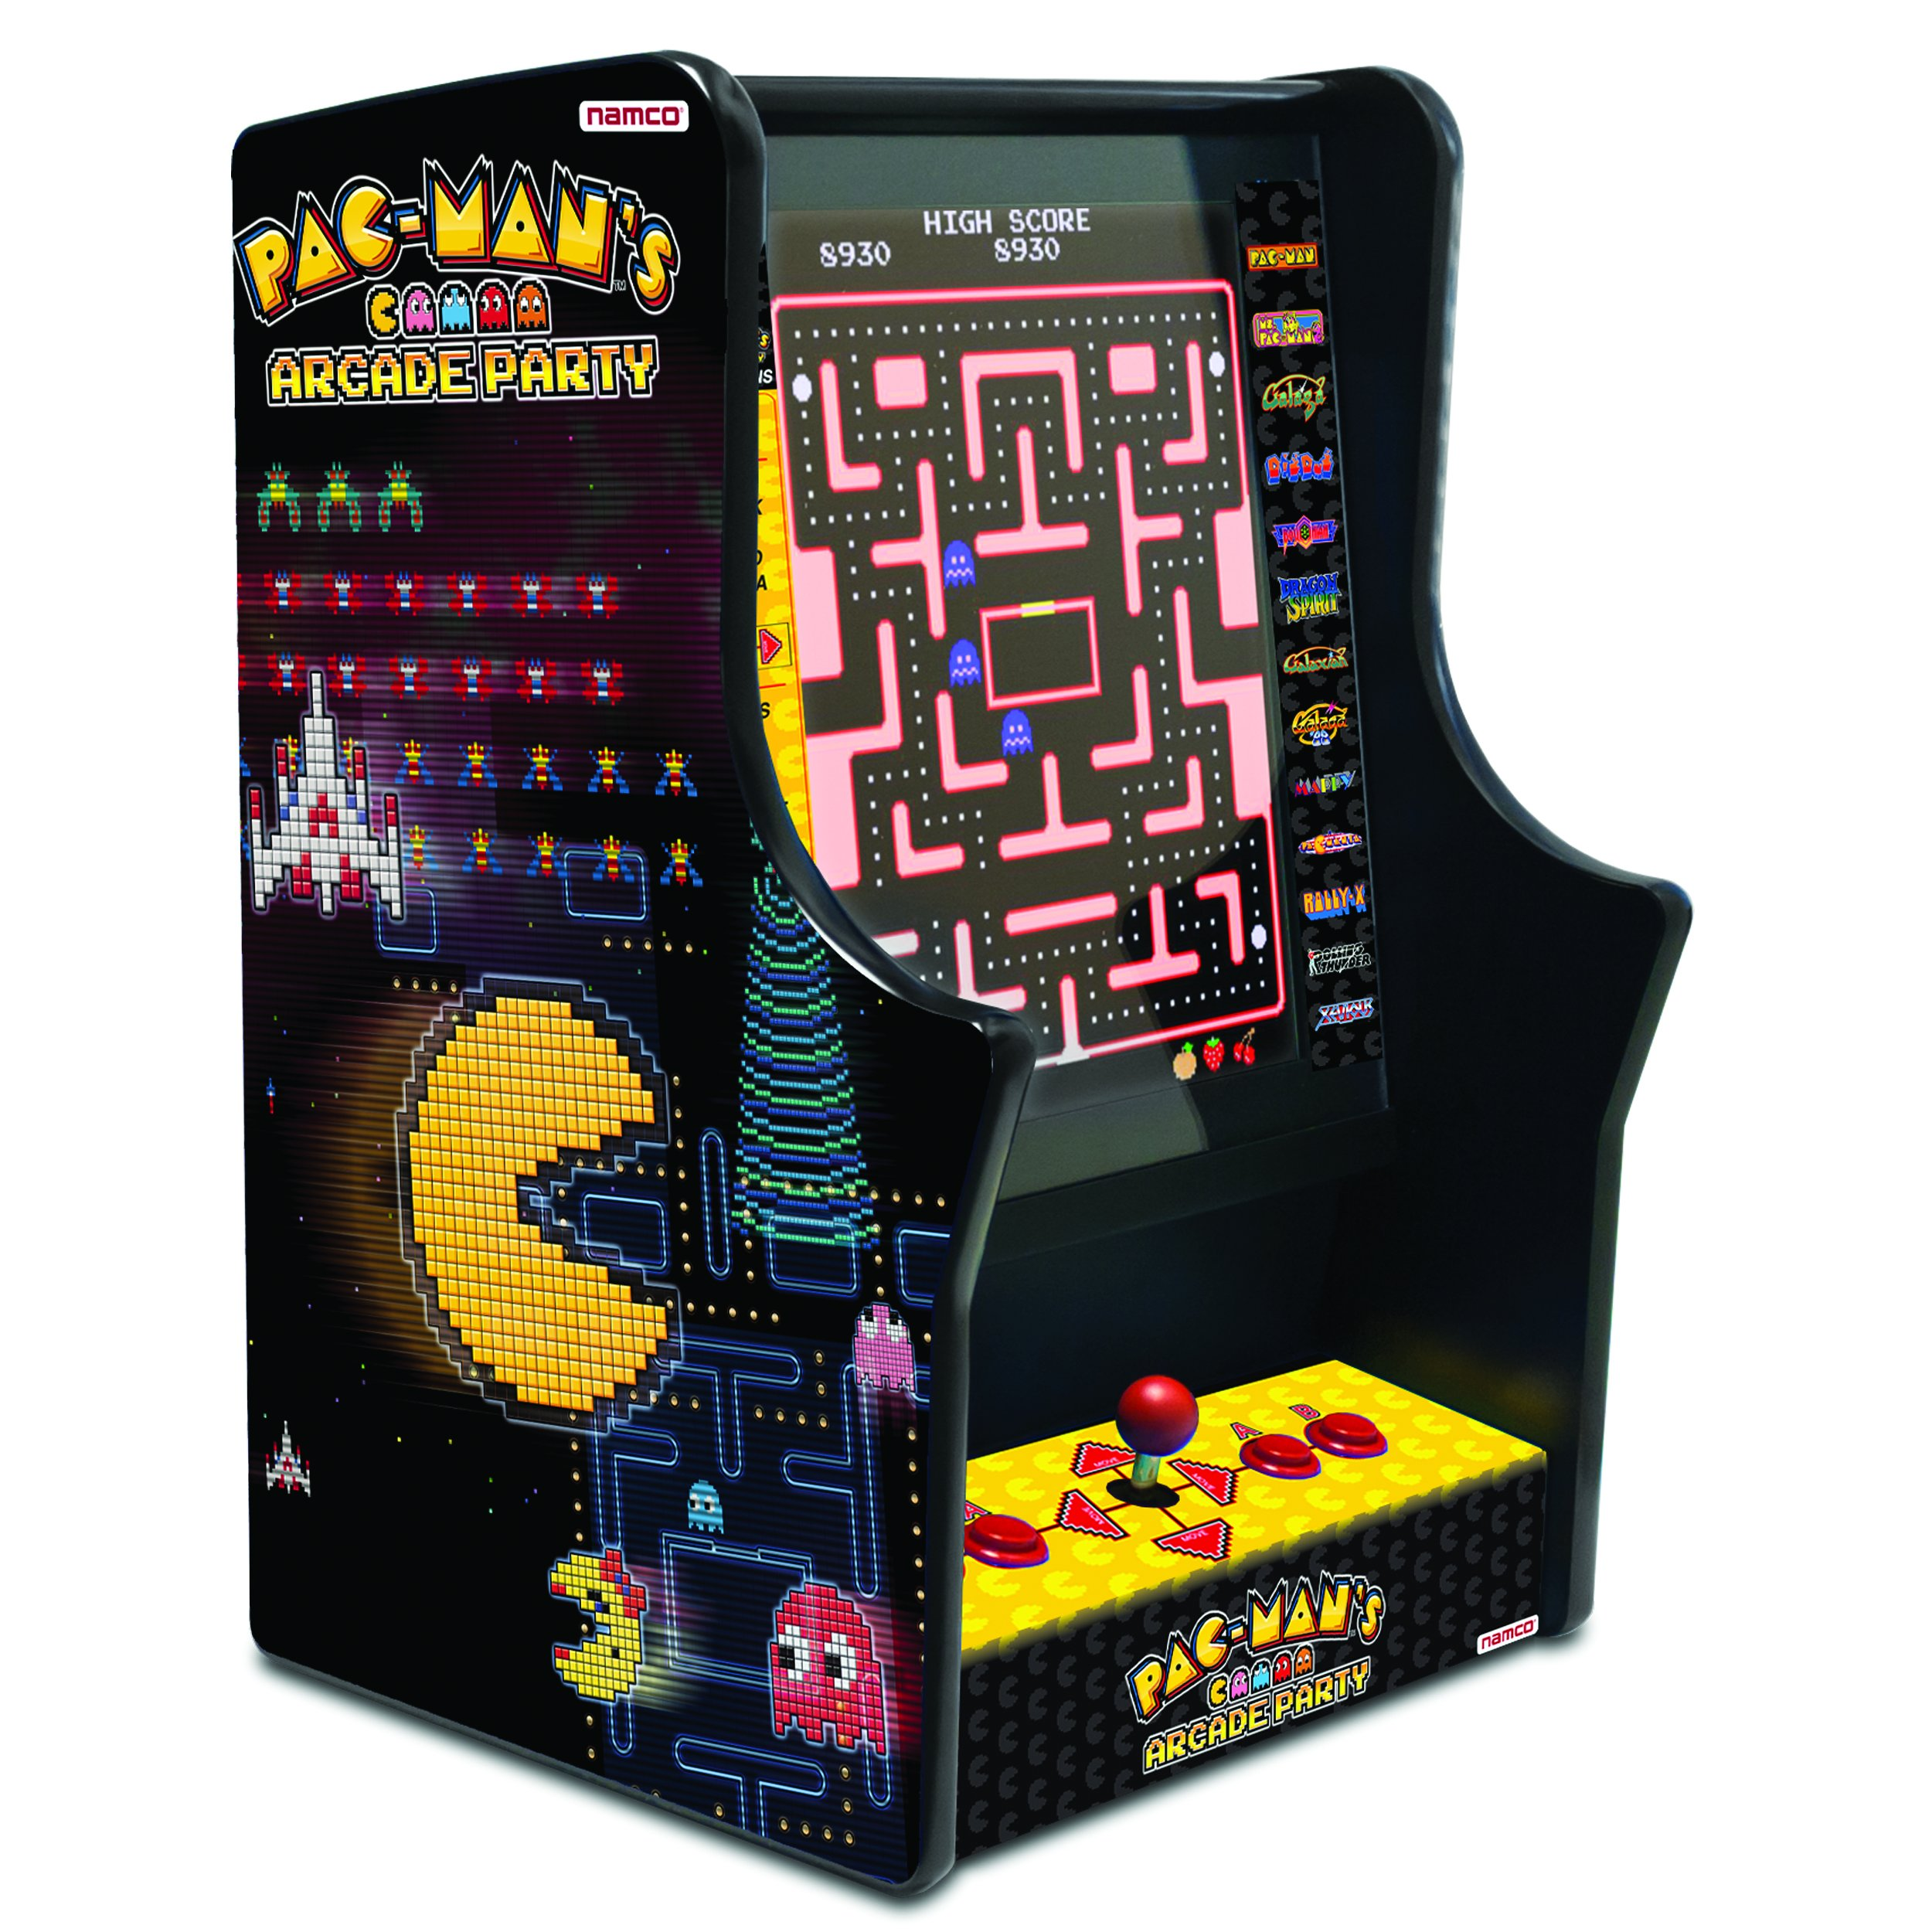 Pac-Mans Arcade Party Tabletop Arcade Machine with 13 Classic Games, 17-Inch LCD Screen and Controls by Namco